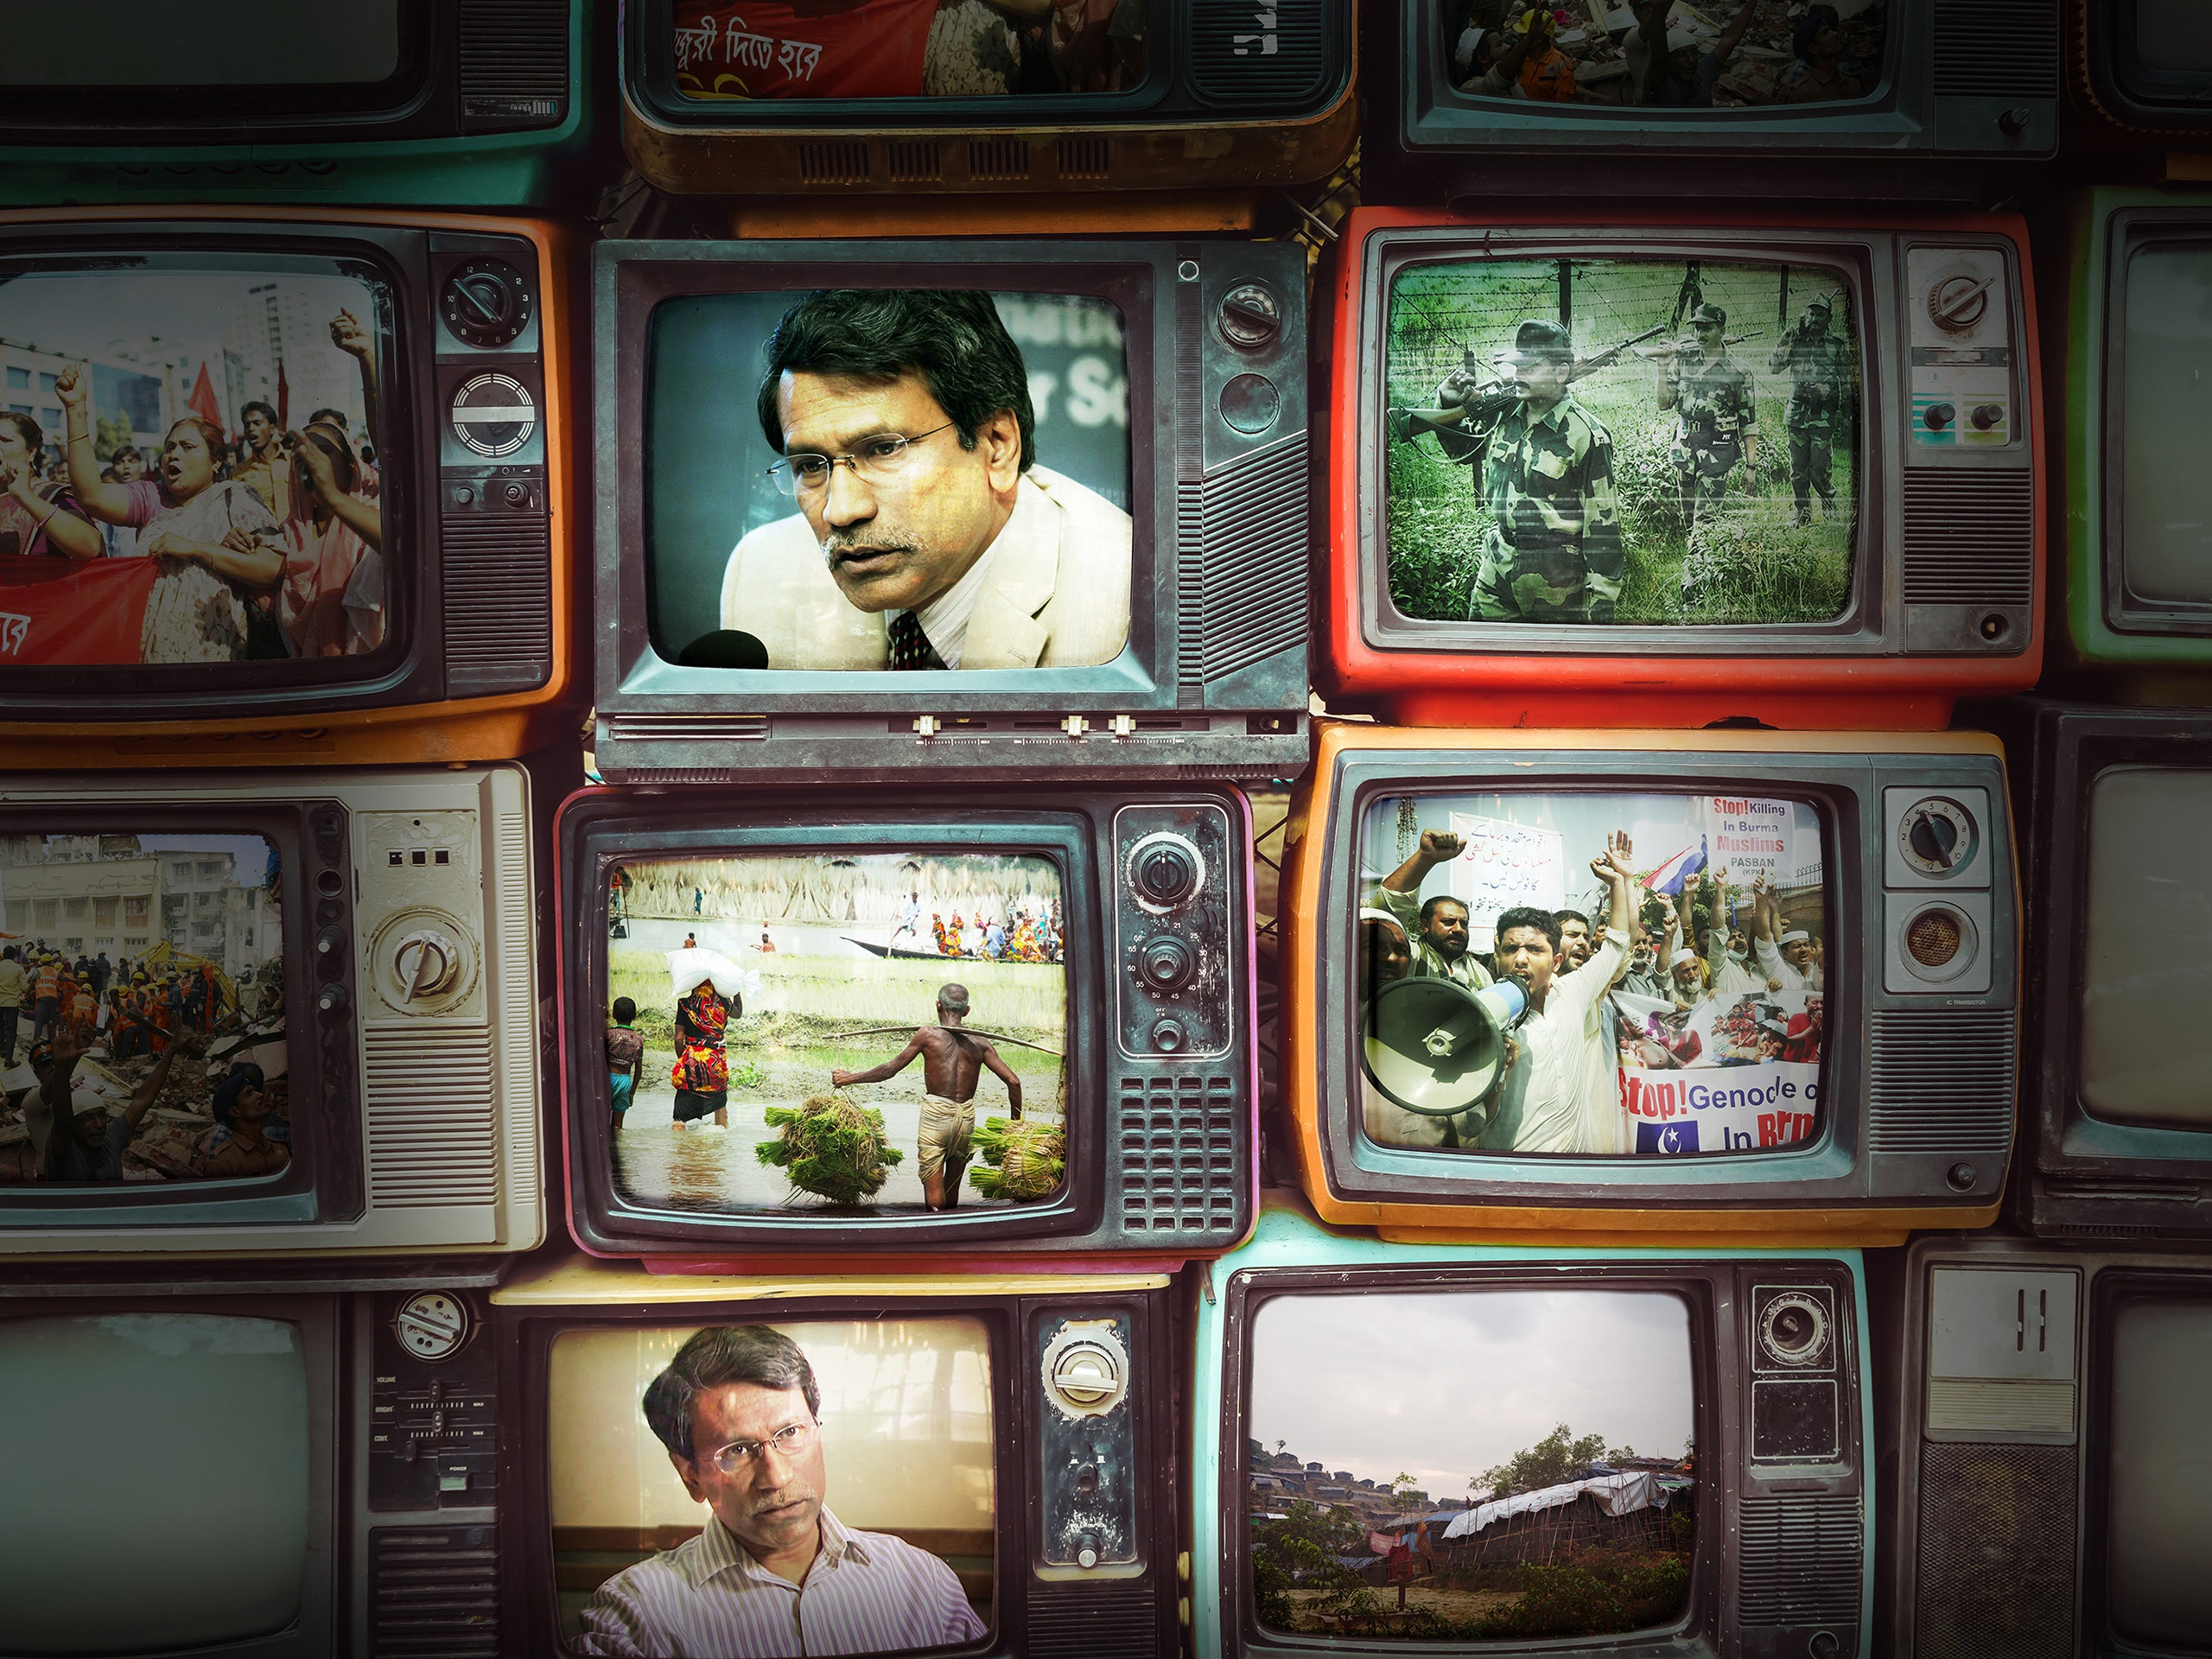 Collage of Ali Riaz and conflict images on retro televisions.